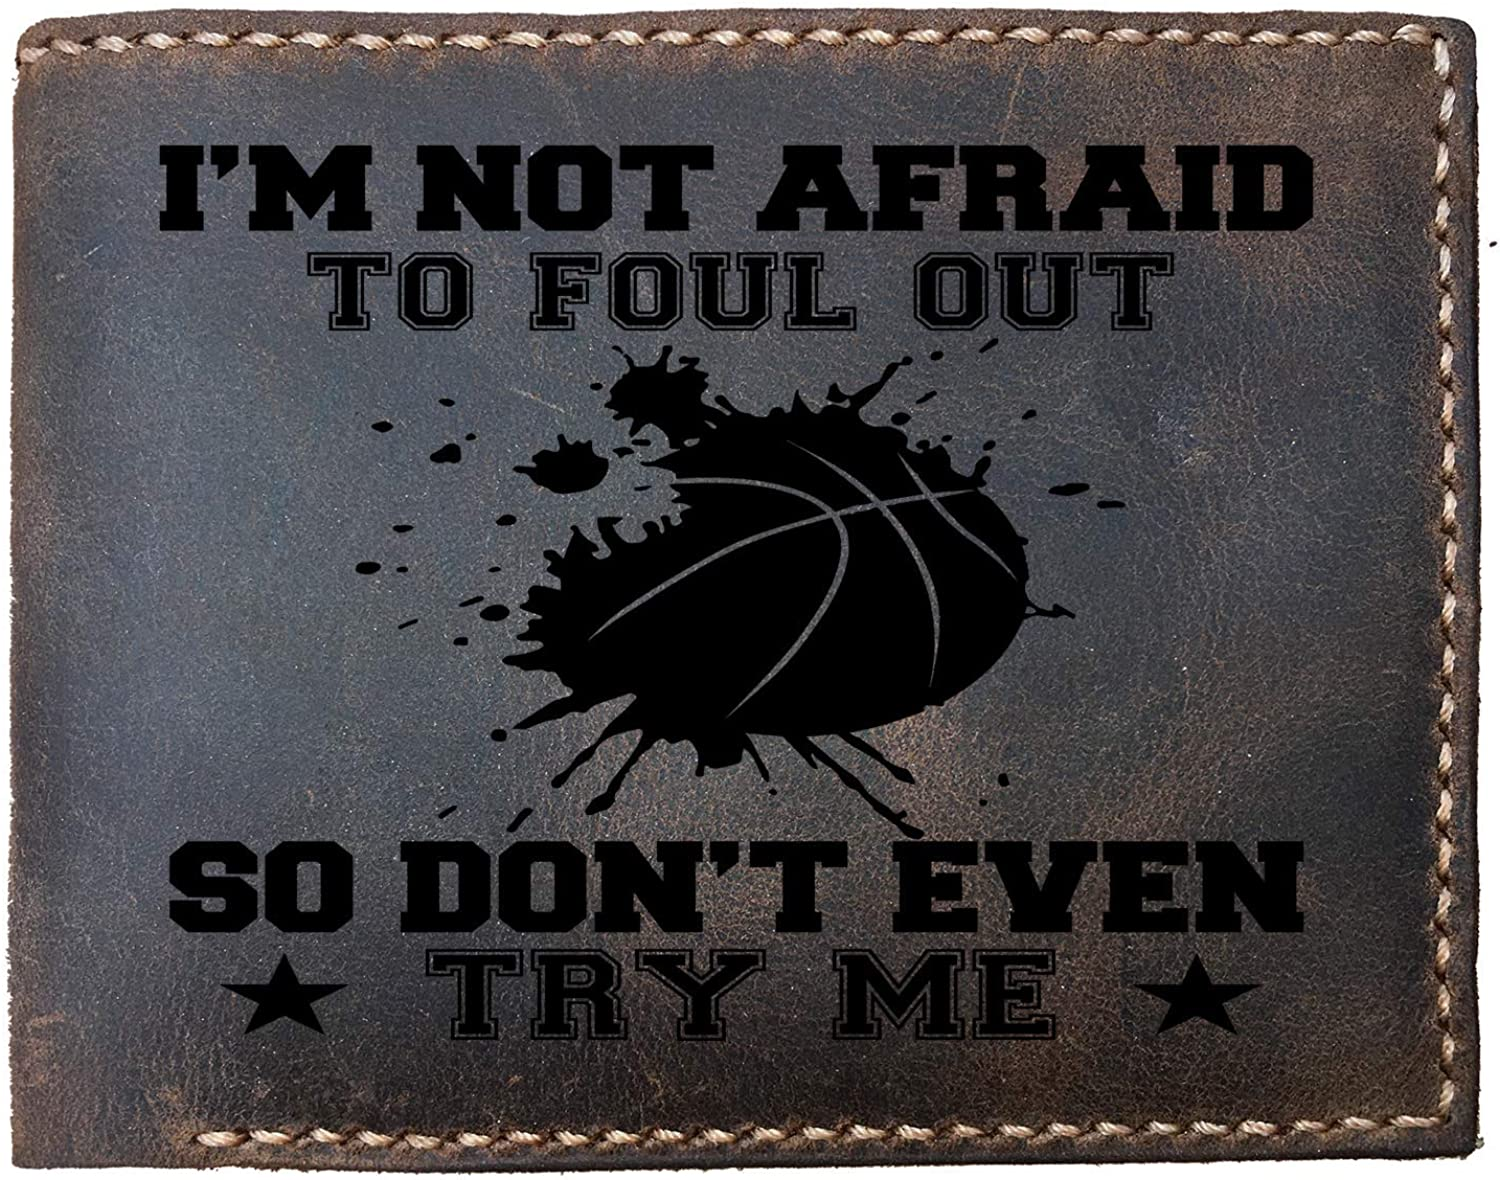 Lobsteray Im Not Afraid To Foul Out Funny Basketball Quotes Custom Laser Engraved Leather Bifold Wallet for Men